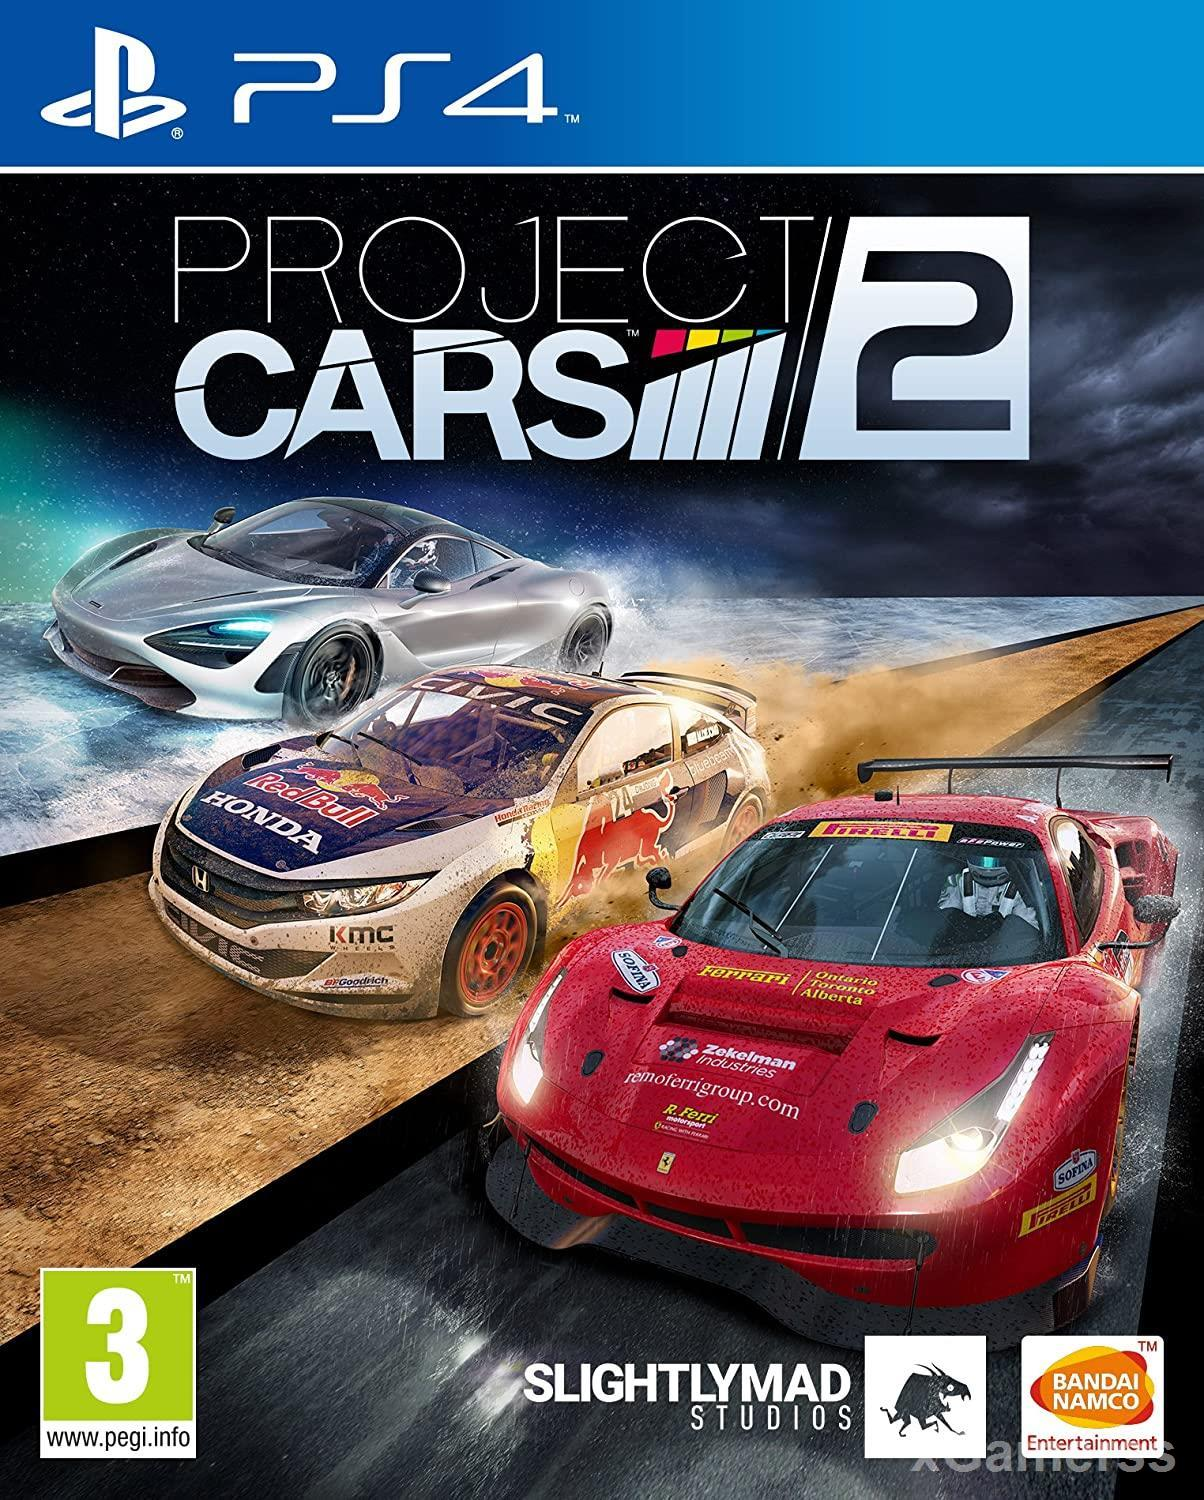 Projects Cars 2 is the next in line alternative to Gran Turismo Sport